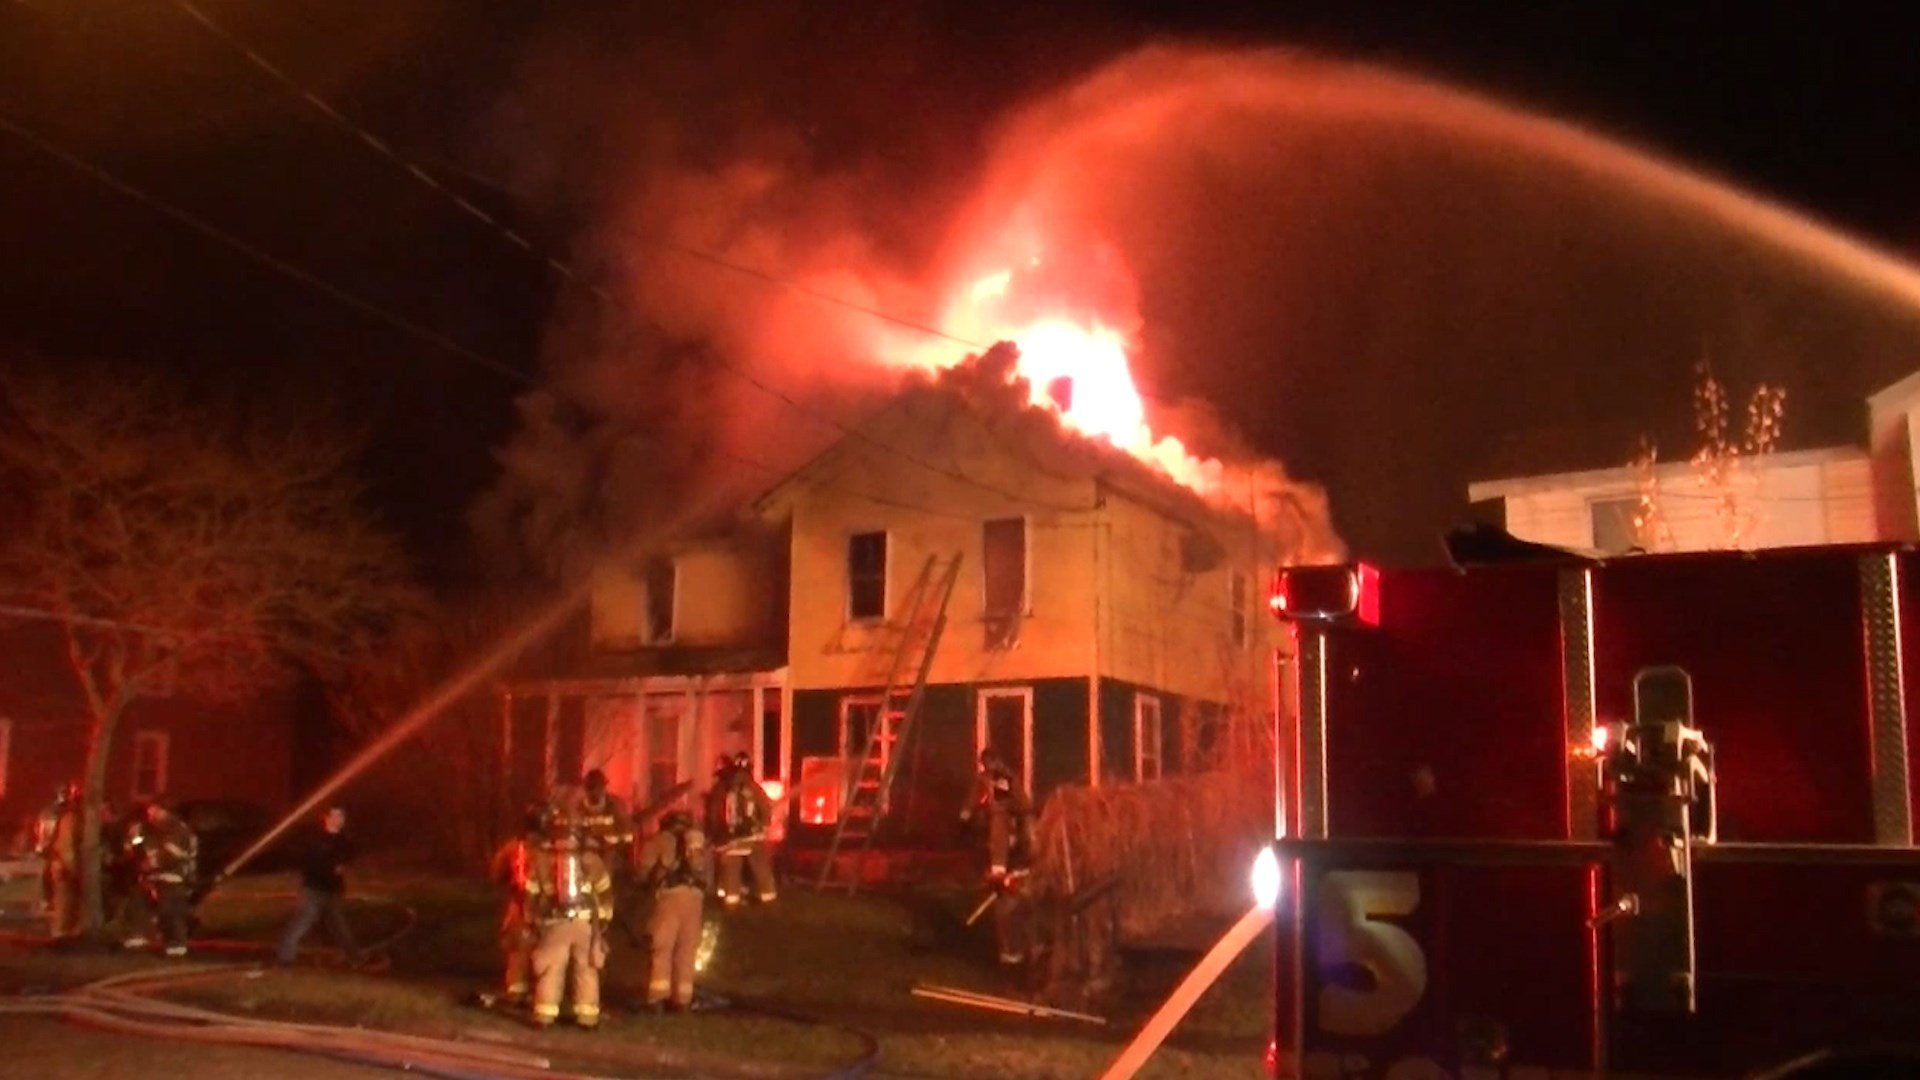 19 Year Old Charged with 12 Counts of Arson in Jamestown, New York